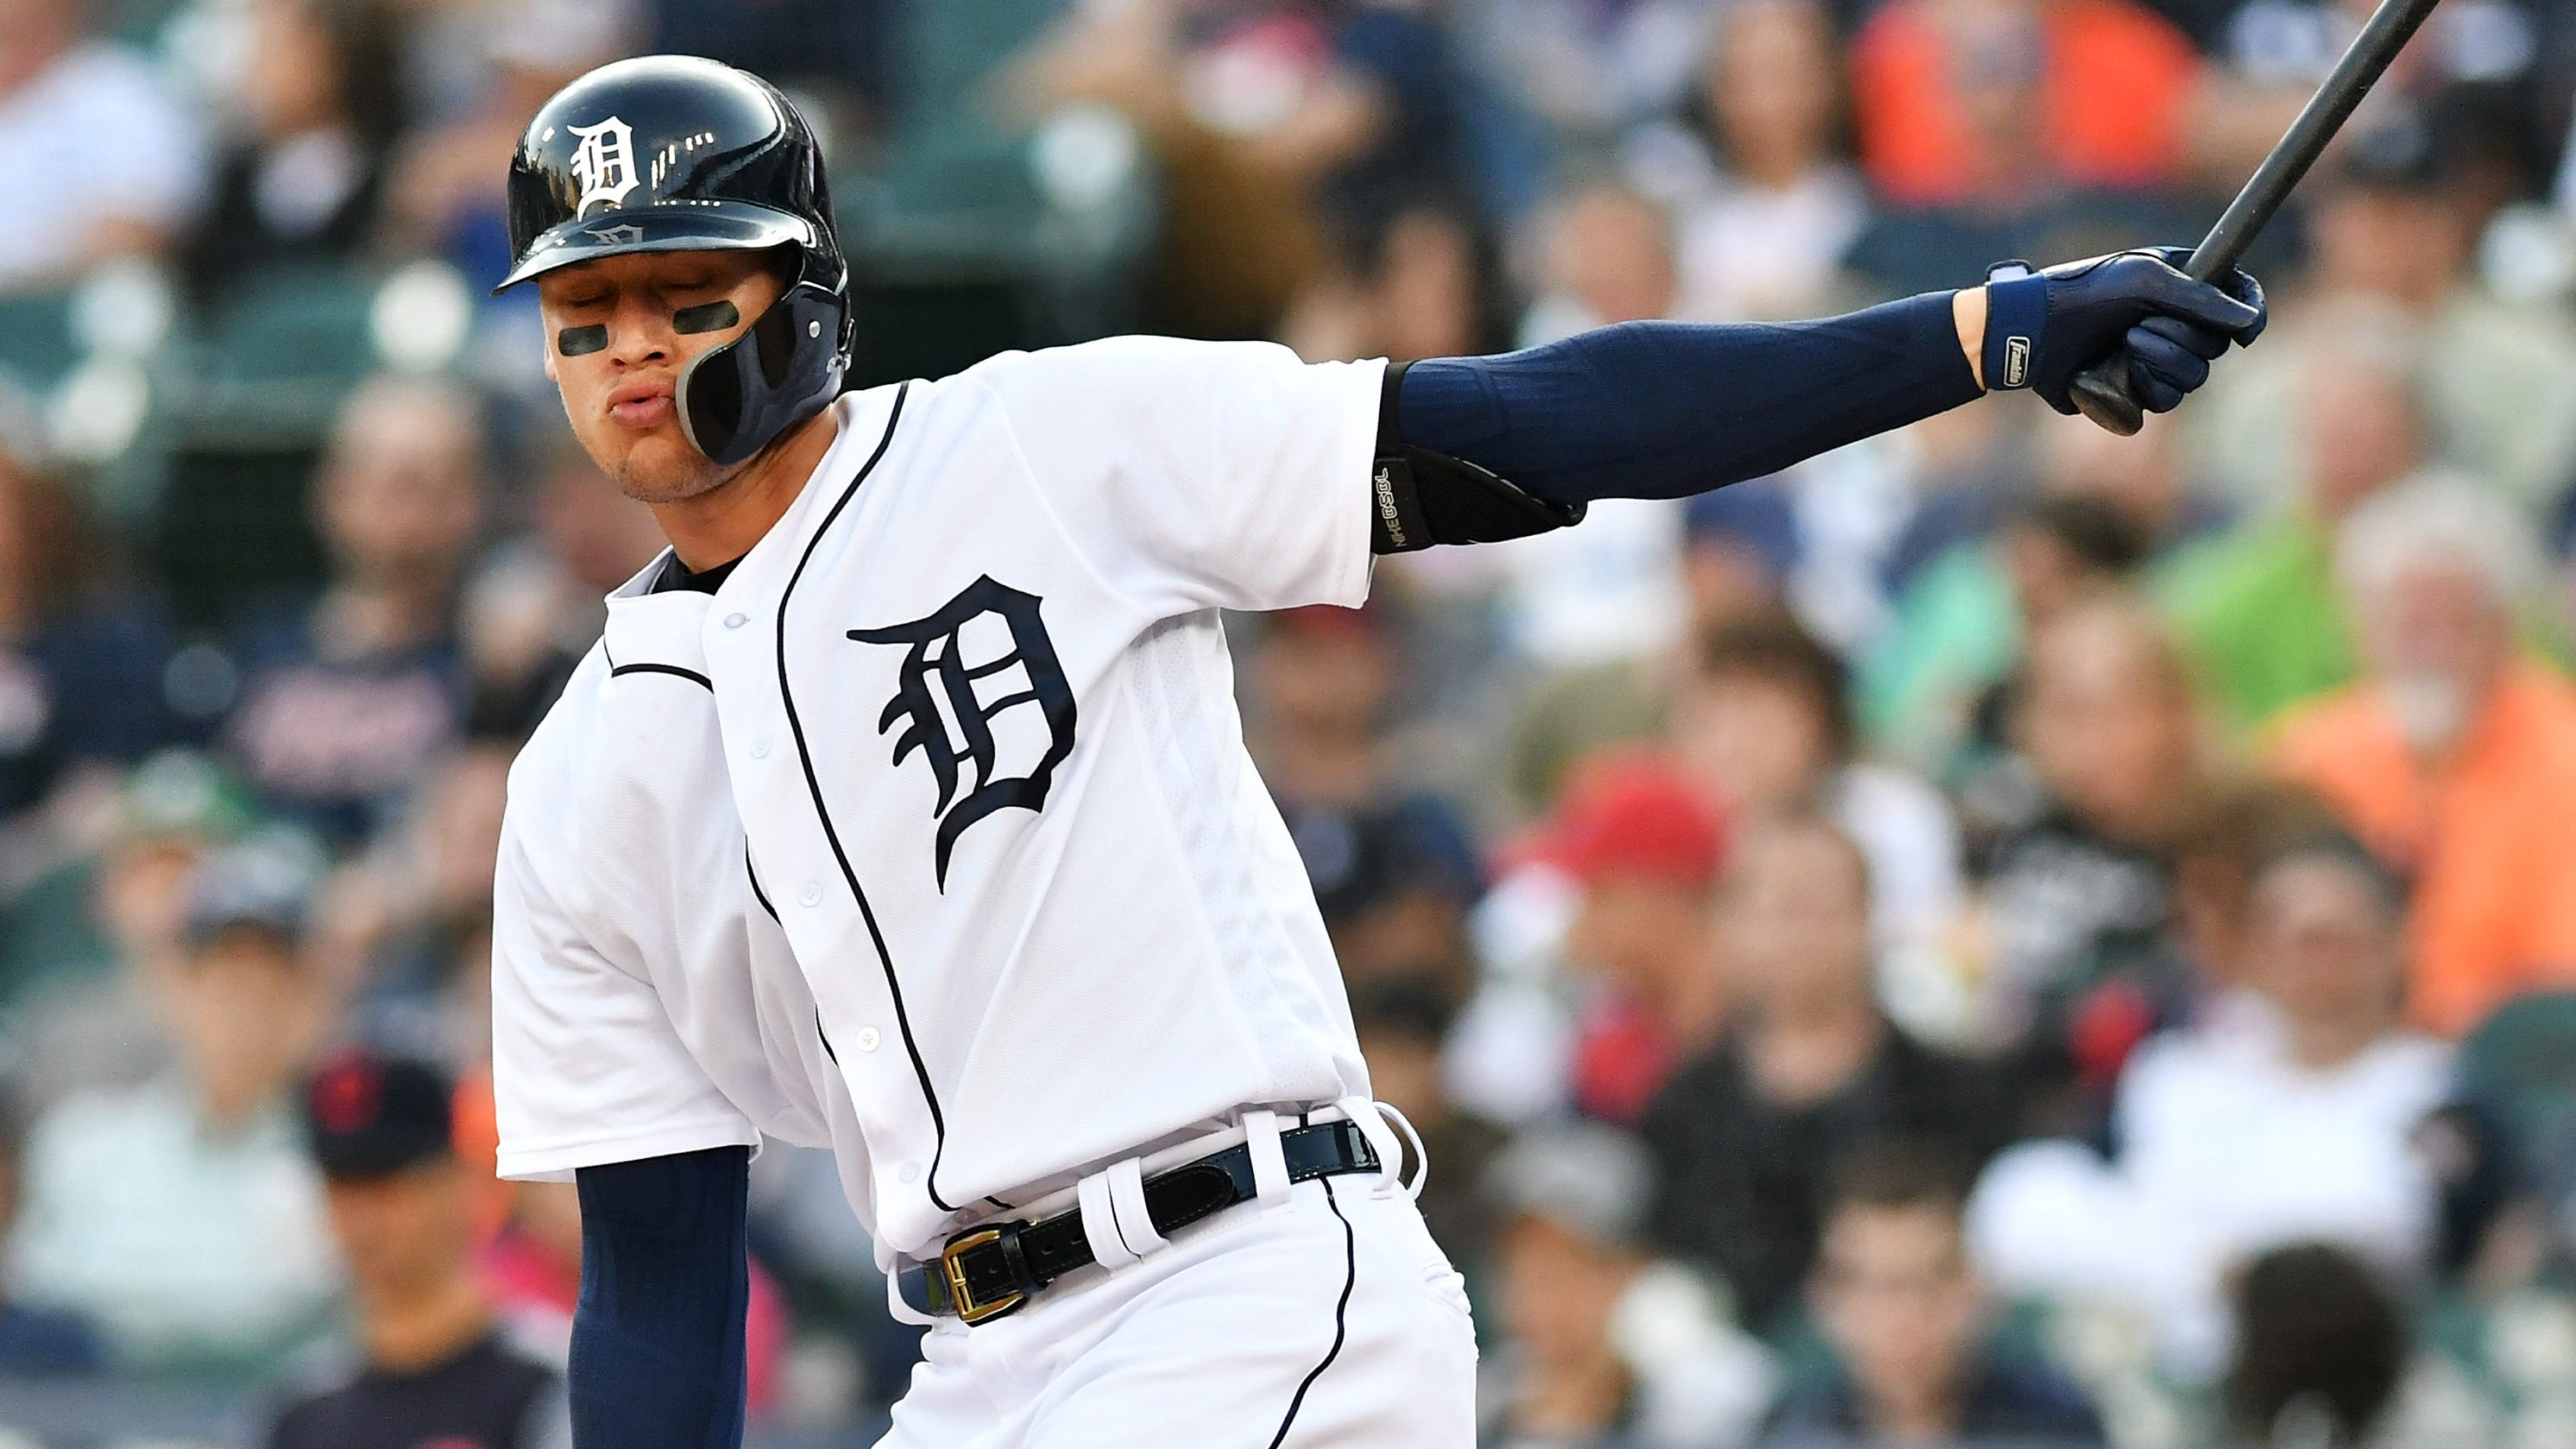 Gardenhire: Tigers can't grow as a team until strikeout epidemic is vanquished